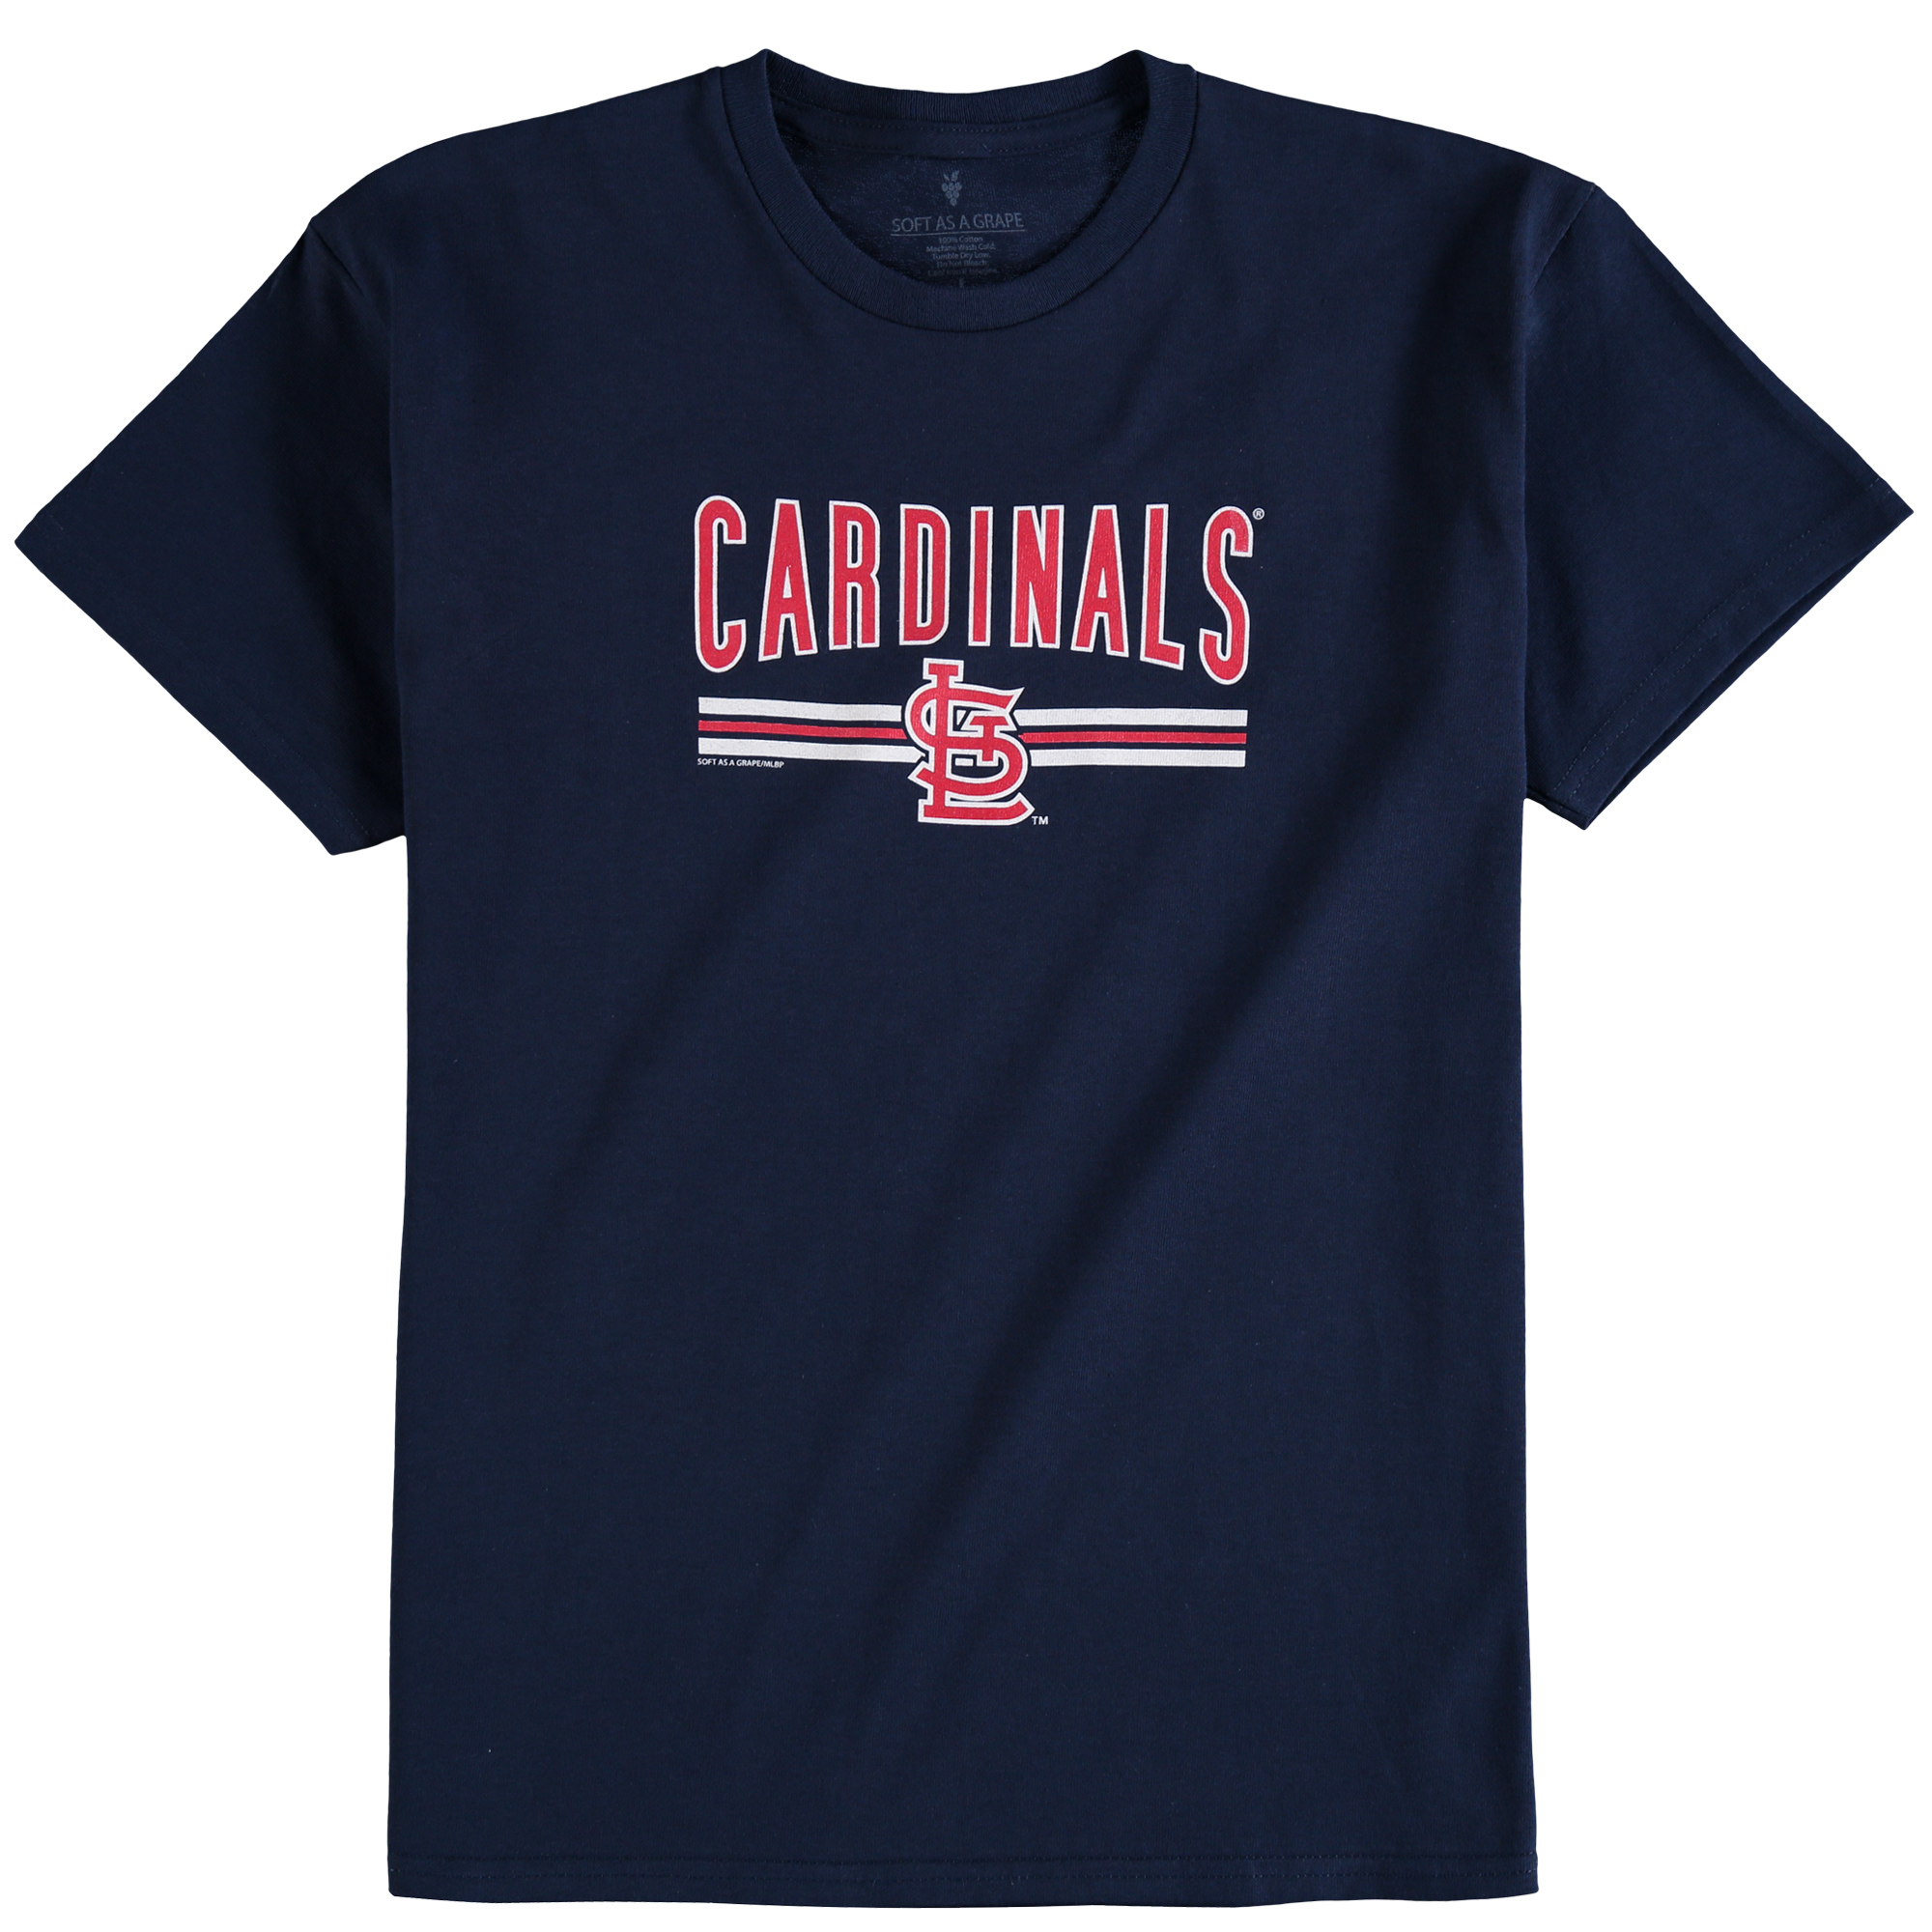 St. Louis Cardinals Soft as a Grape Youth On Base Crew T-Shirt - Navy